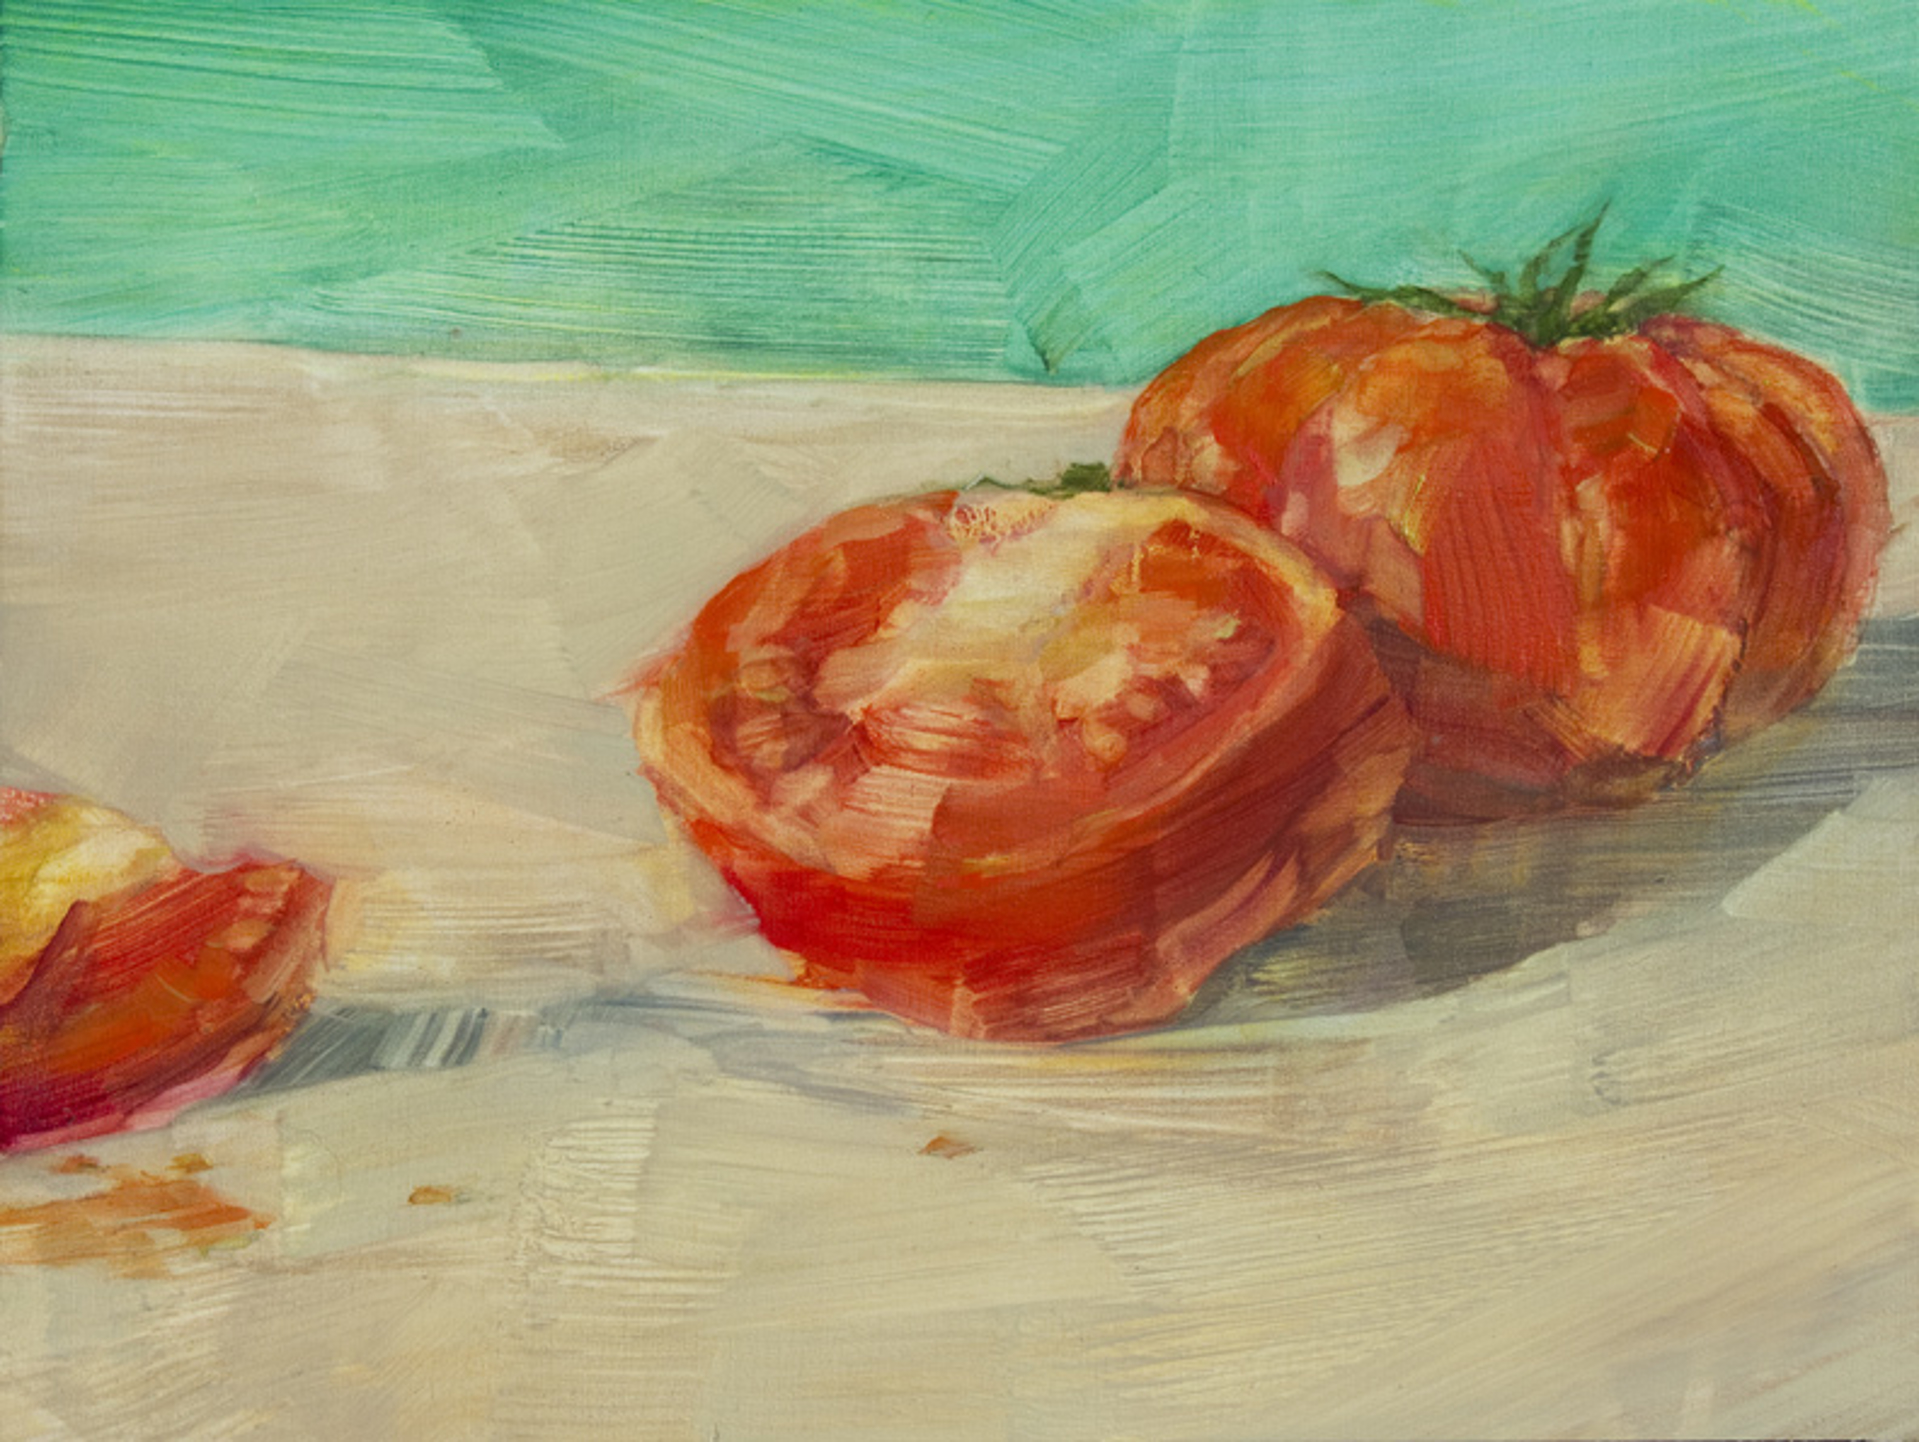 tomatoes by Angie Renfro